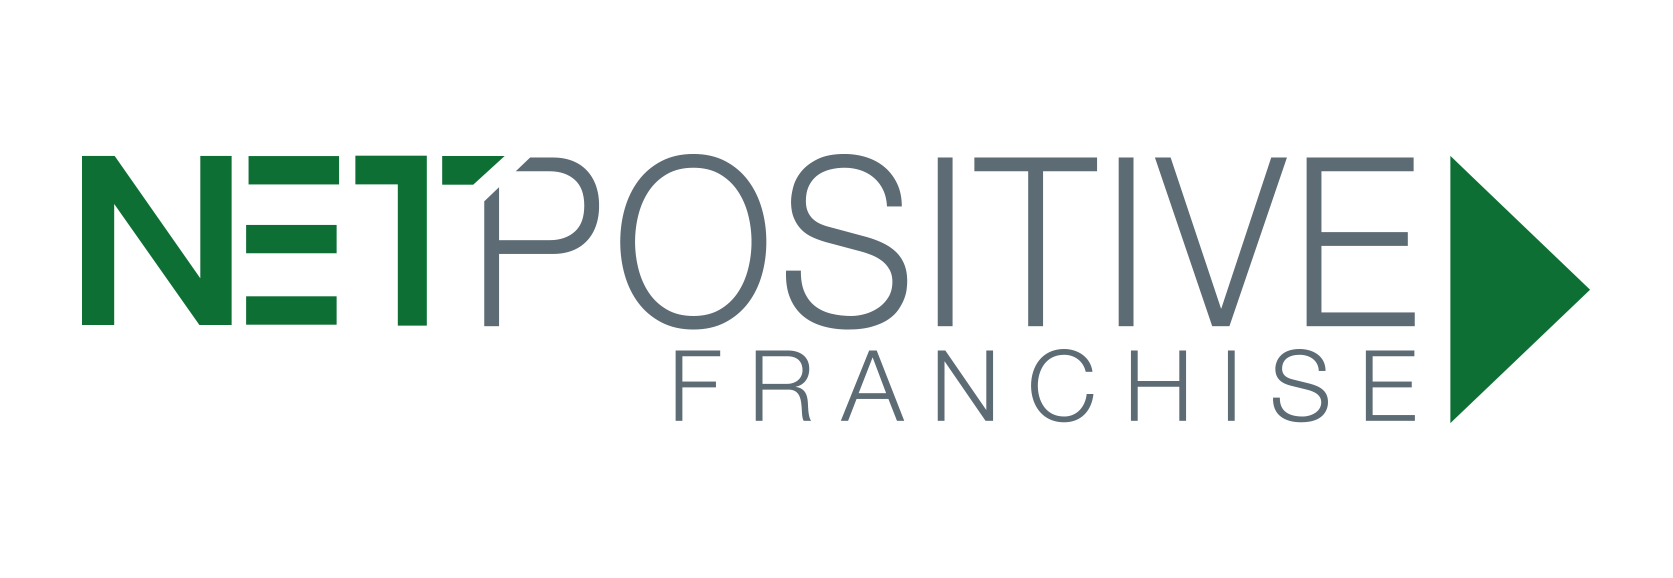 NetPositive Franchise